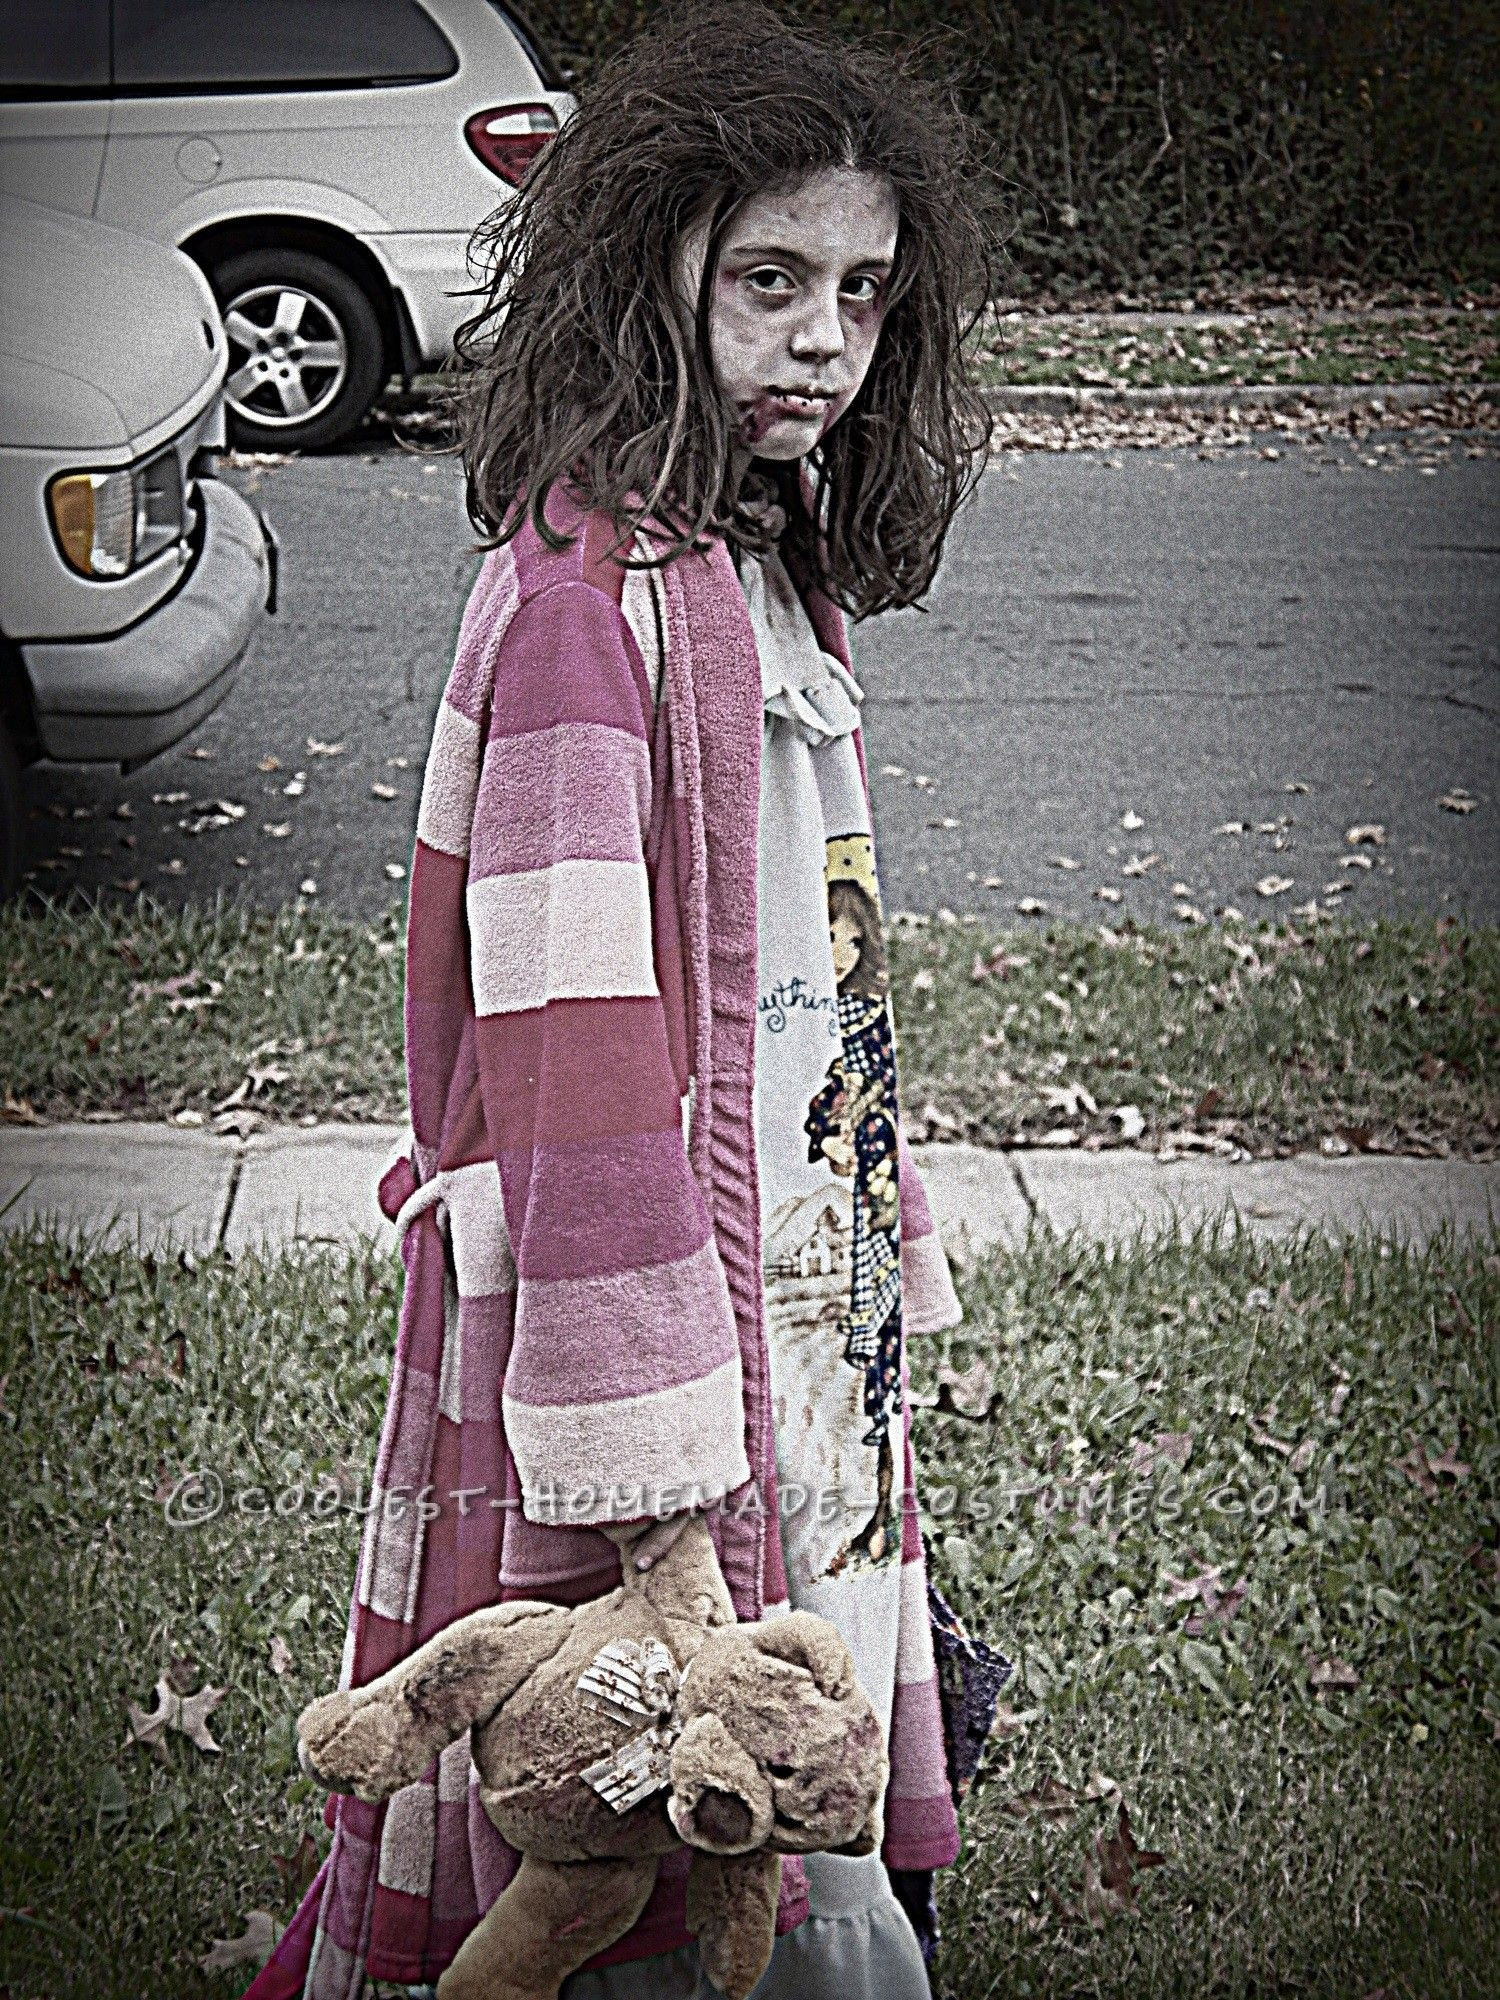 Best ideas about DIY Zombie Costume For Kids . Save or Pin Scary Homemade Costume for a Girl Little Zombie Girl Now.